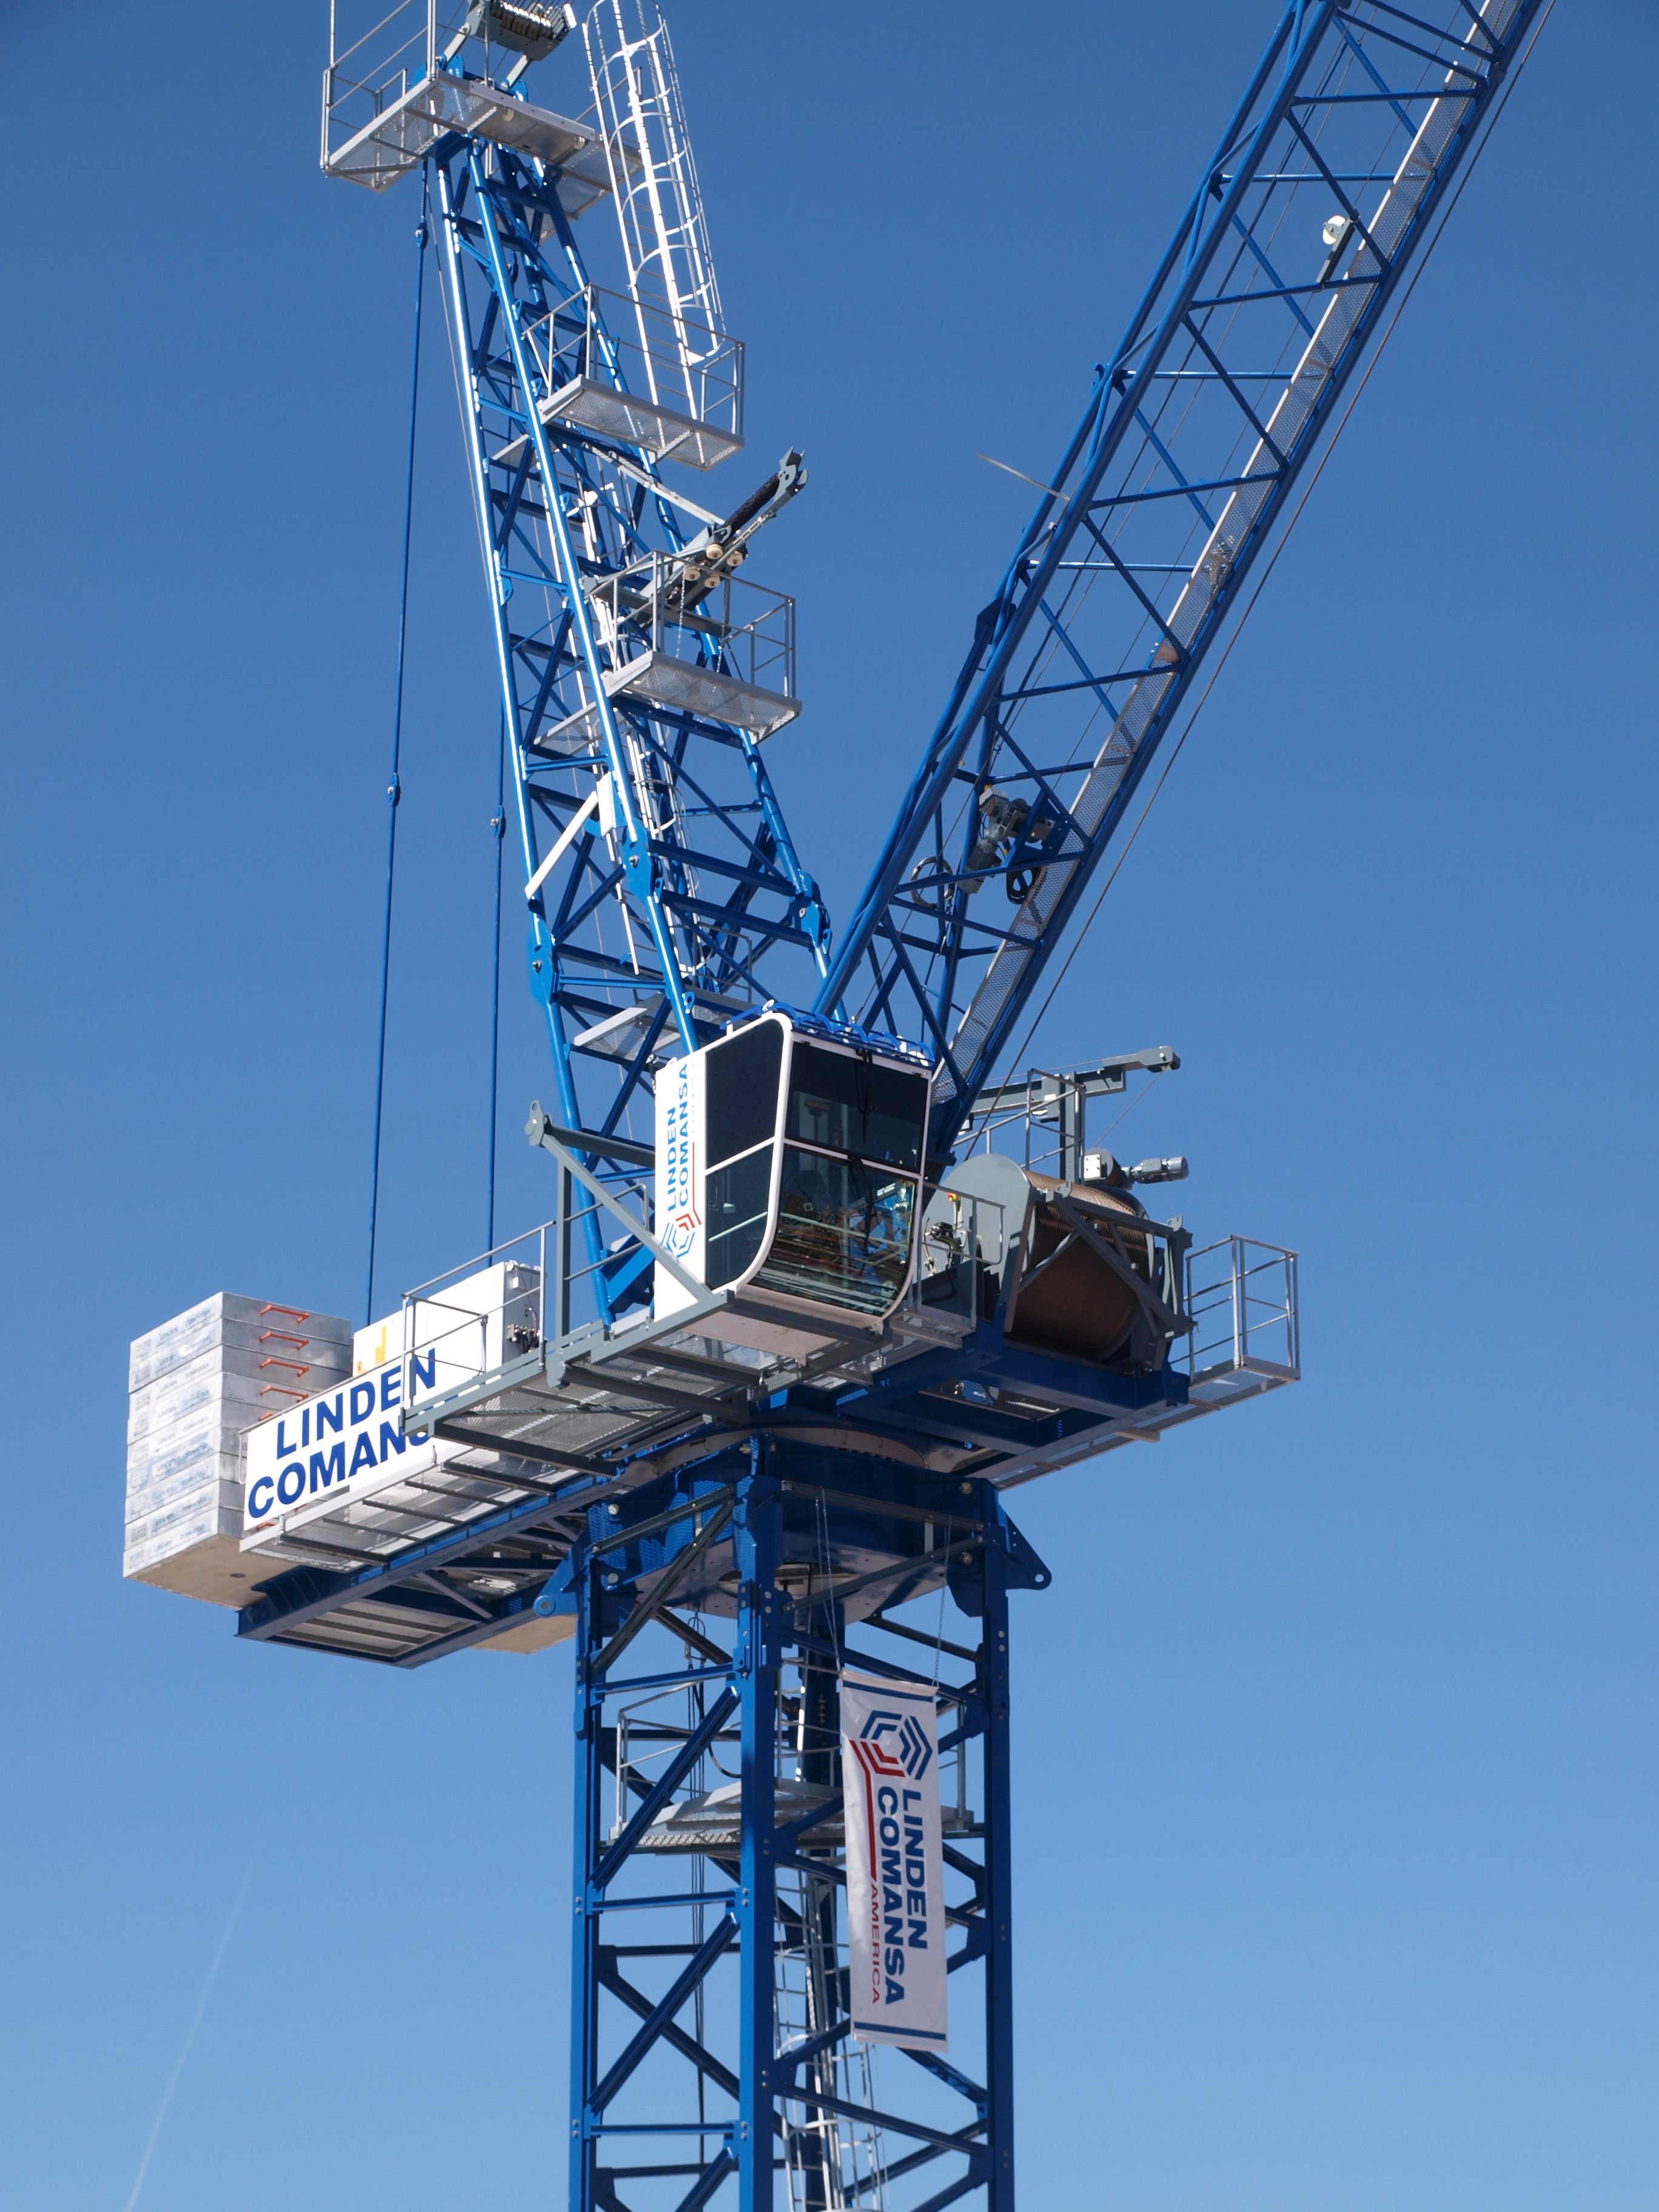 The LCL310 crane helped to make the market aware of the luffing-jib product line by Linden Comansa, consisting of 14 models.